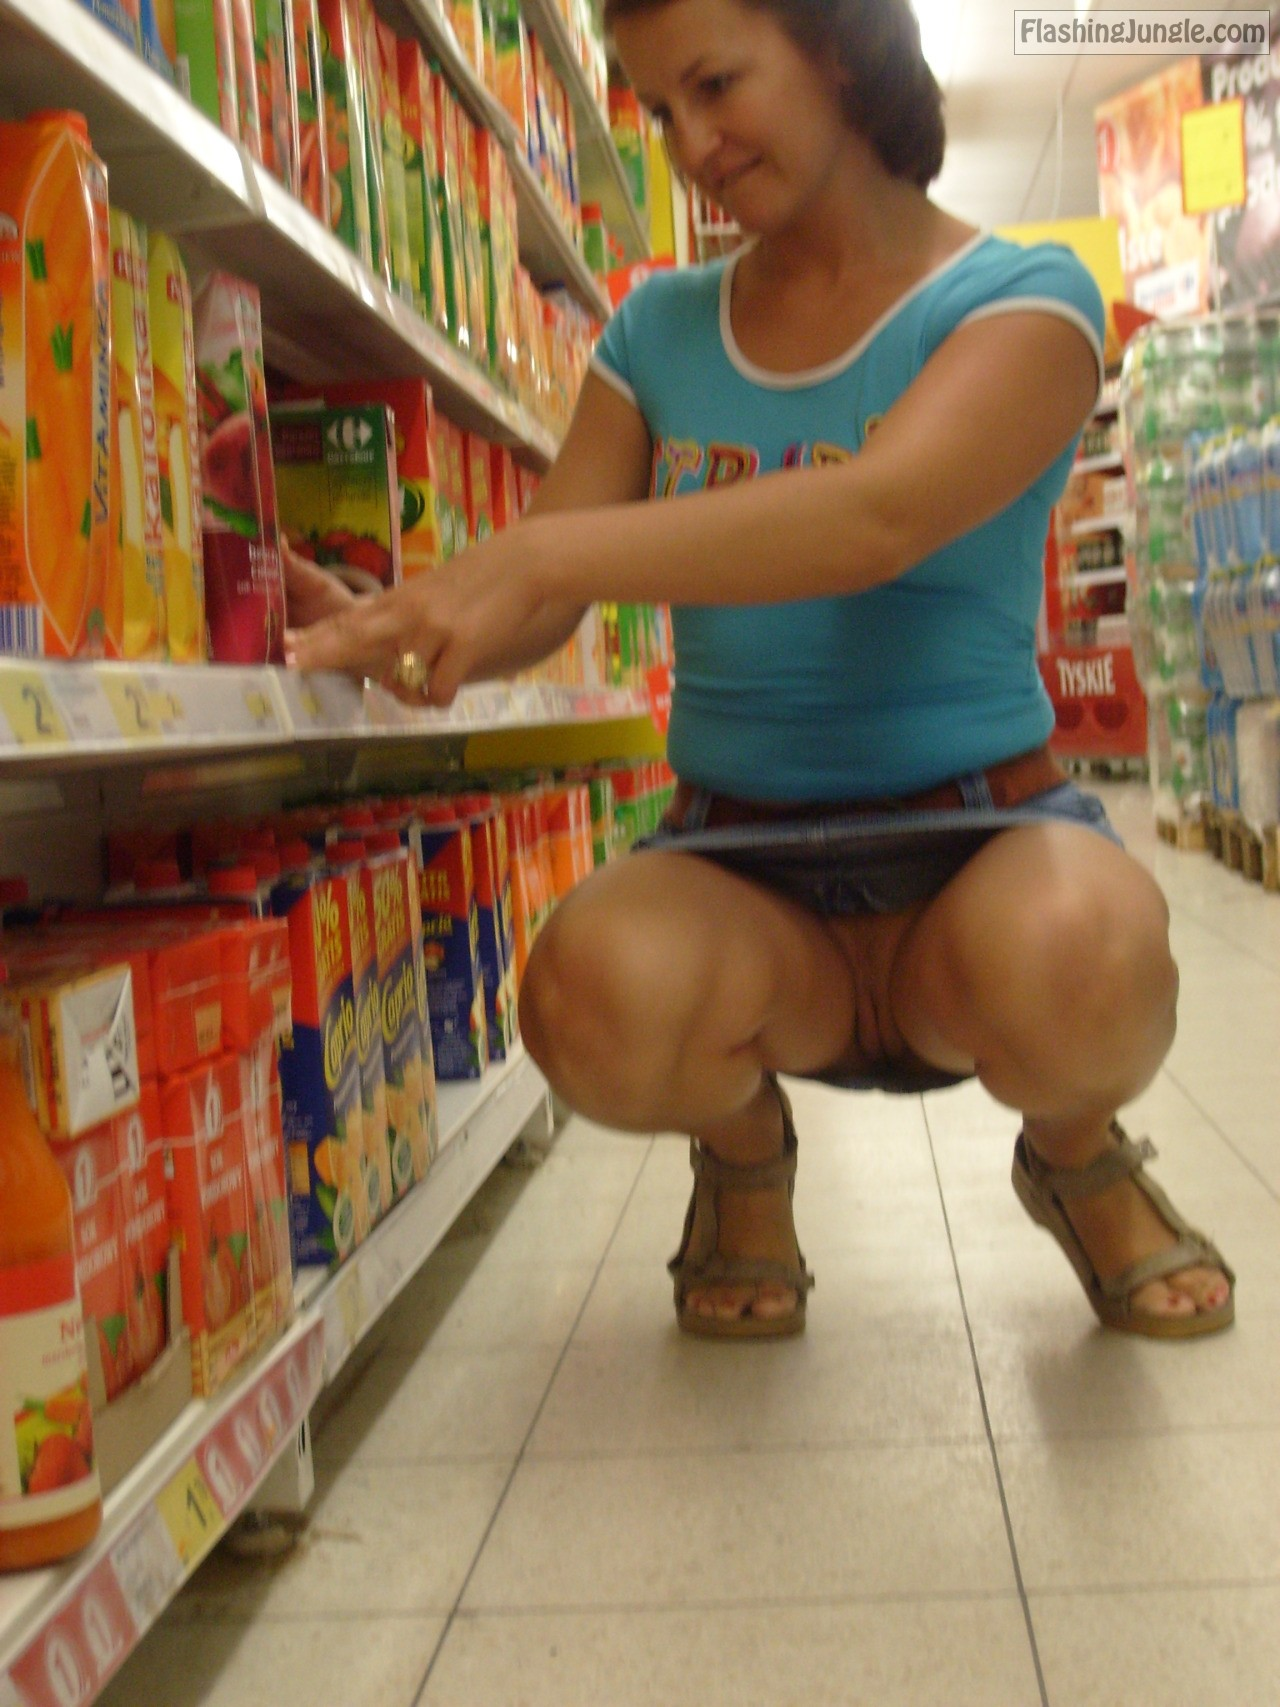 wife flashing in store